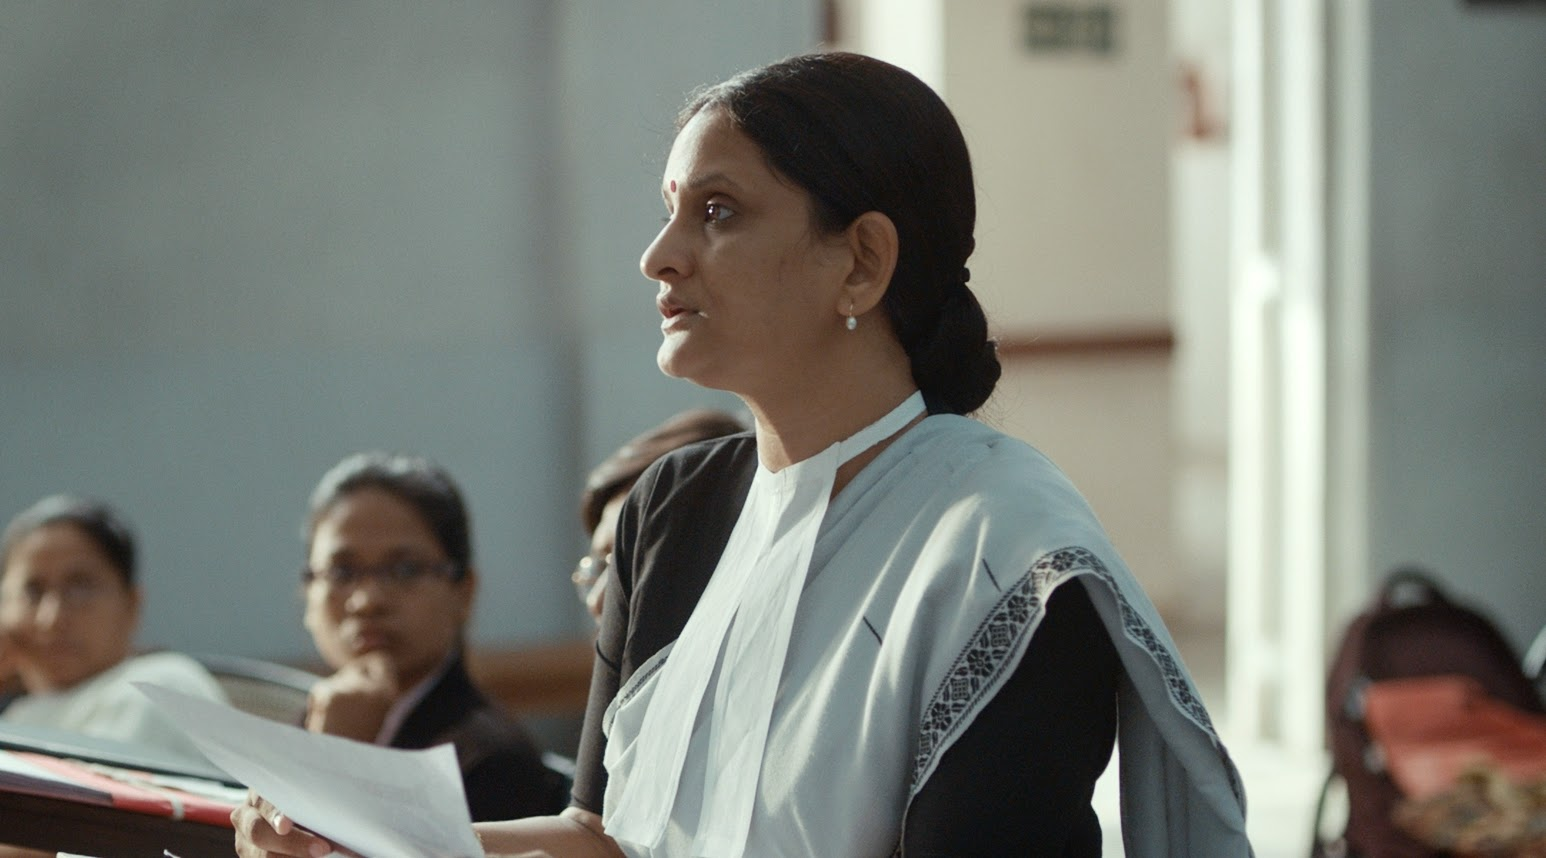 Geetanjali Kulkarni as public prosecutor Nutan, in Court, Directed by Chaitanya Tamhane